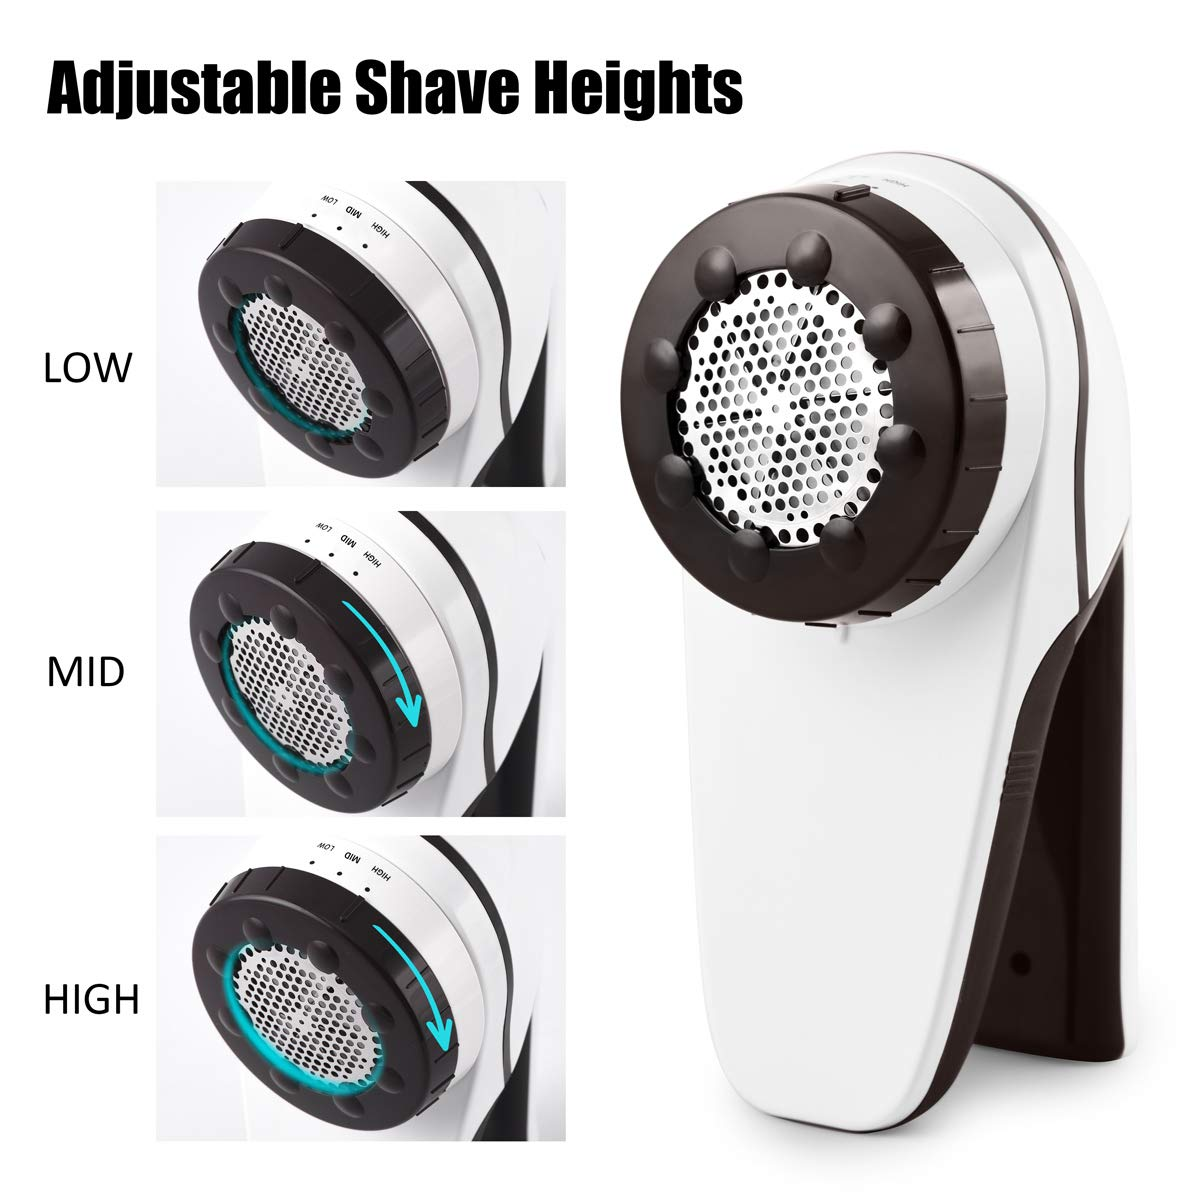 ANVS Professional USB Rechargeable Fabric Shaver and Lint Remover with 3-Adjustable Shave Height for Your Clothes, Sofa, Sheets, Curtain, 1 Extra Replaceable Shave Blade Included by ANVS (Image #3)